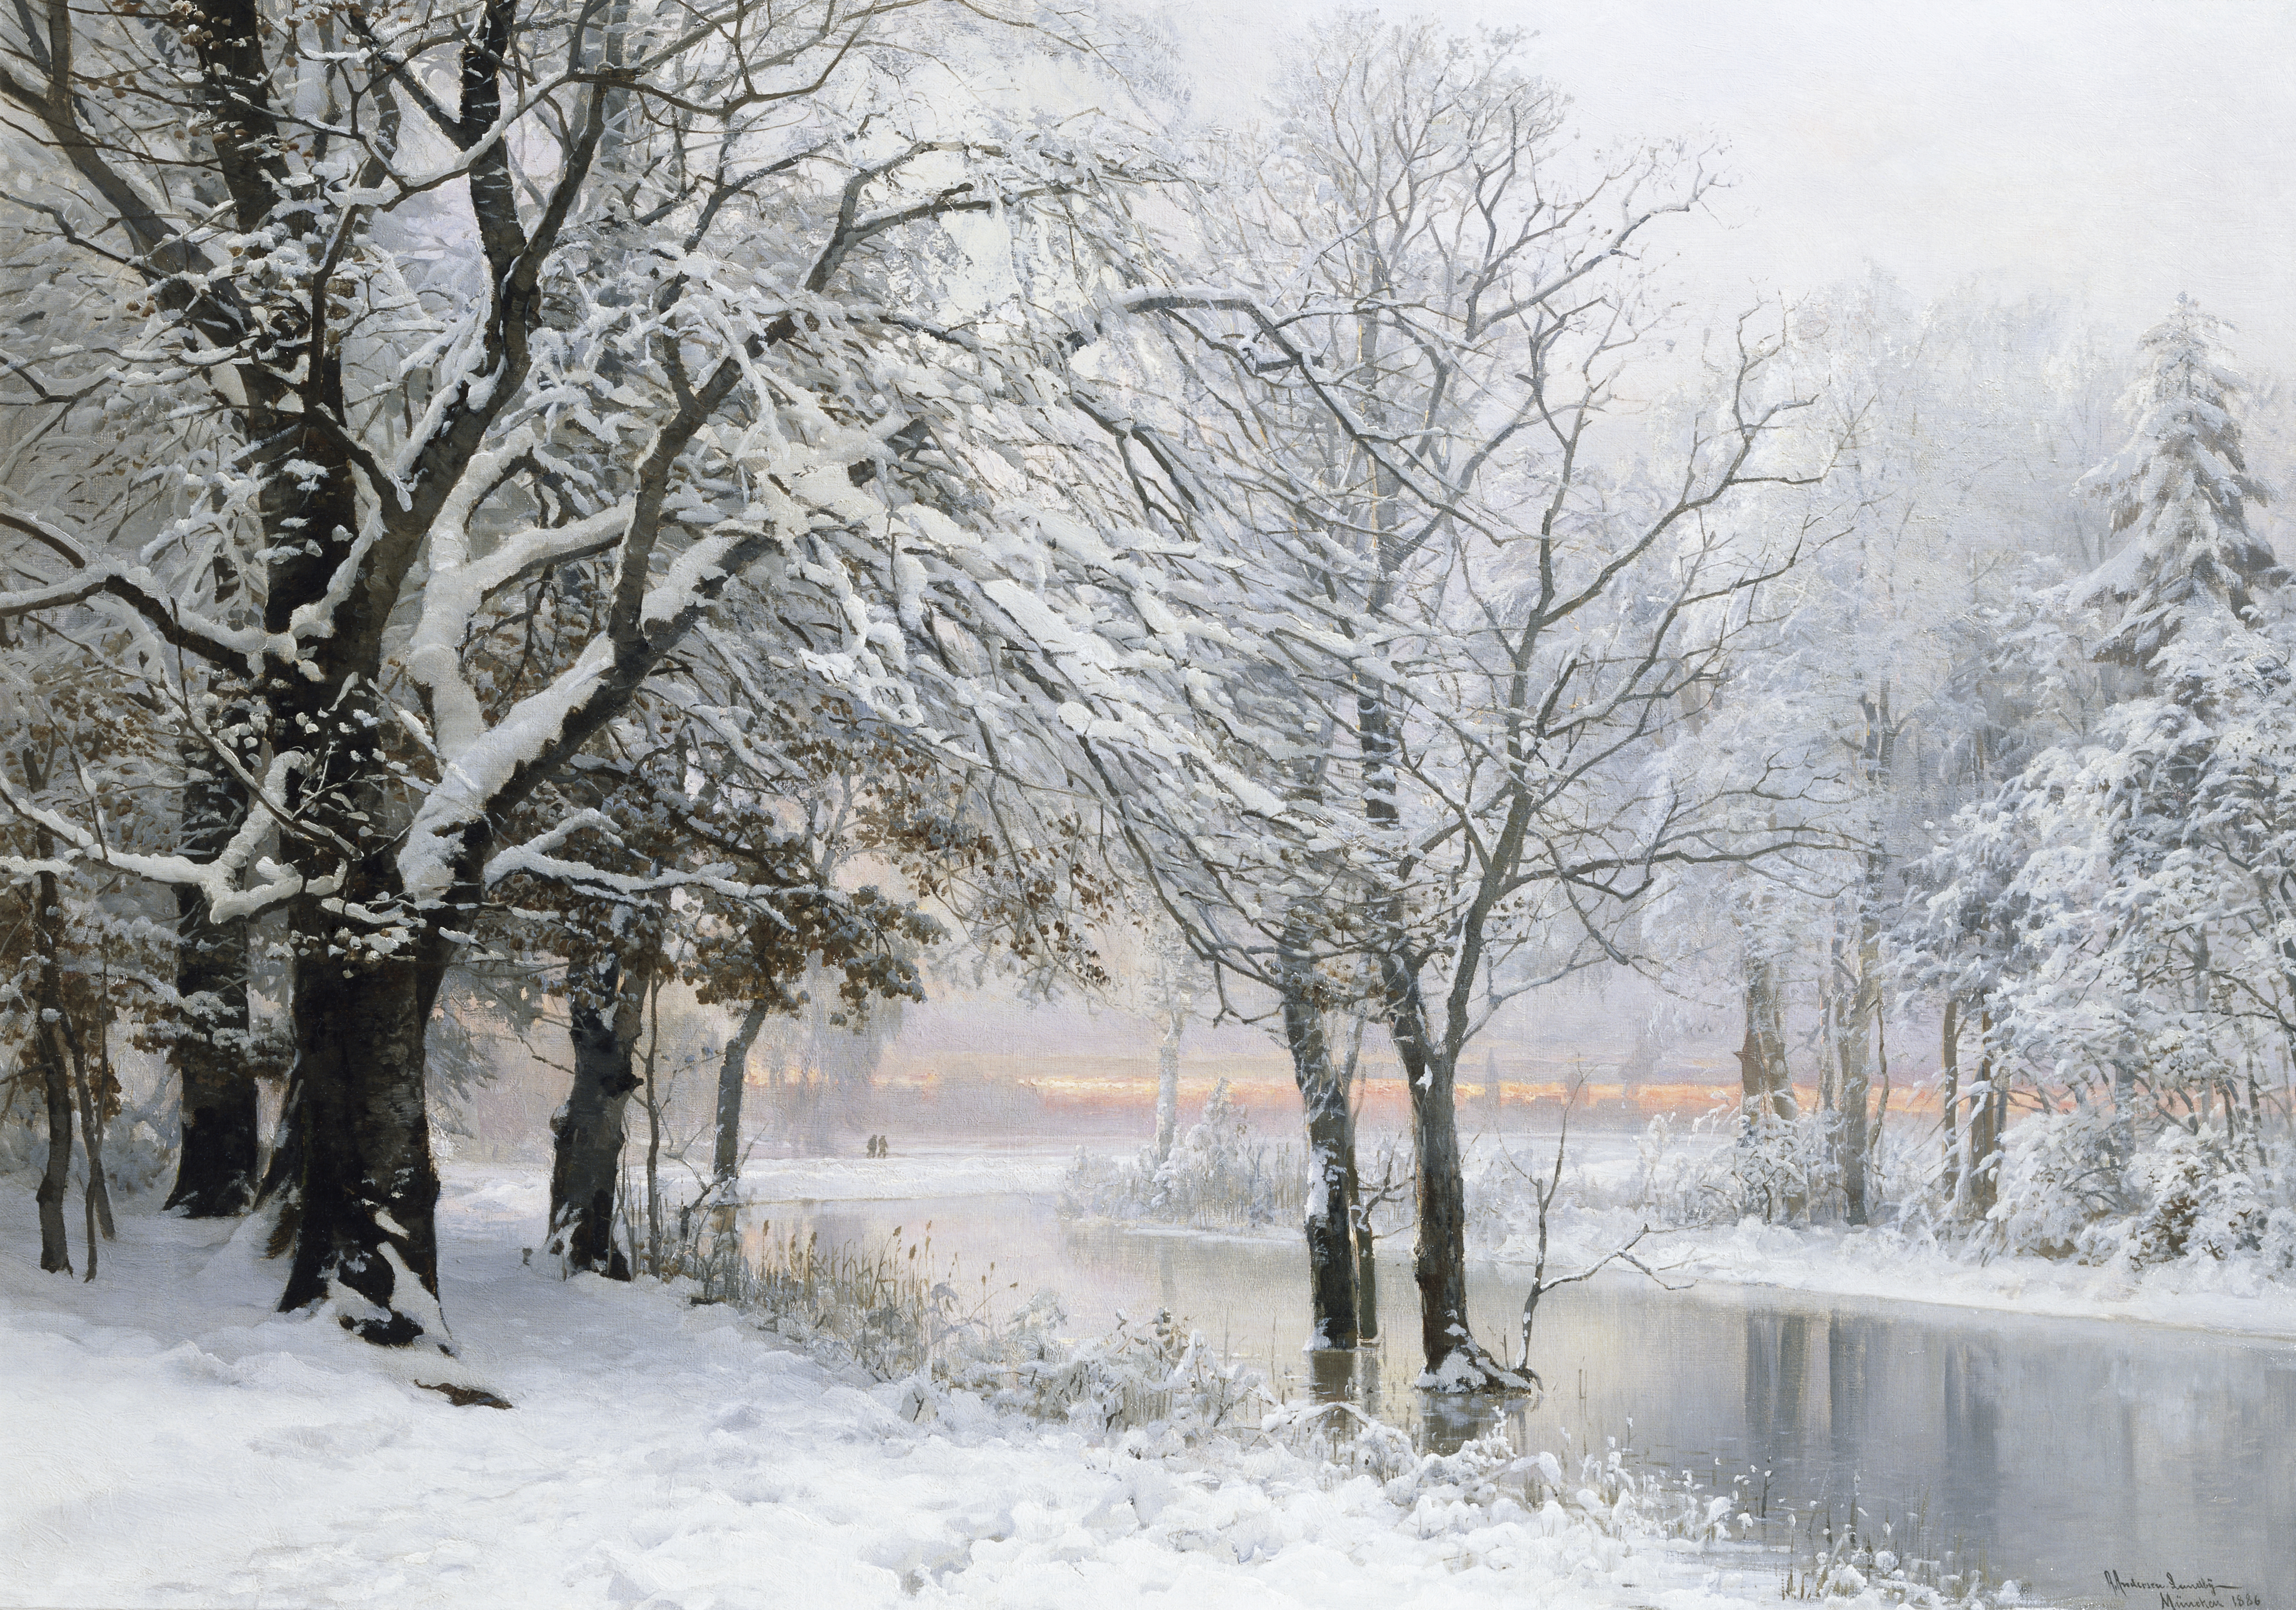 A painting of a quiet wintertime scene near a lake with a faint glow of orange sunlight in the distance.